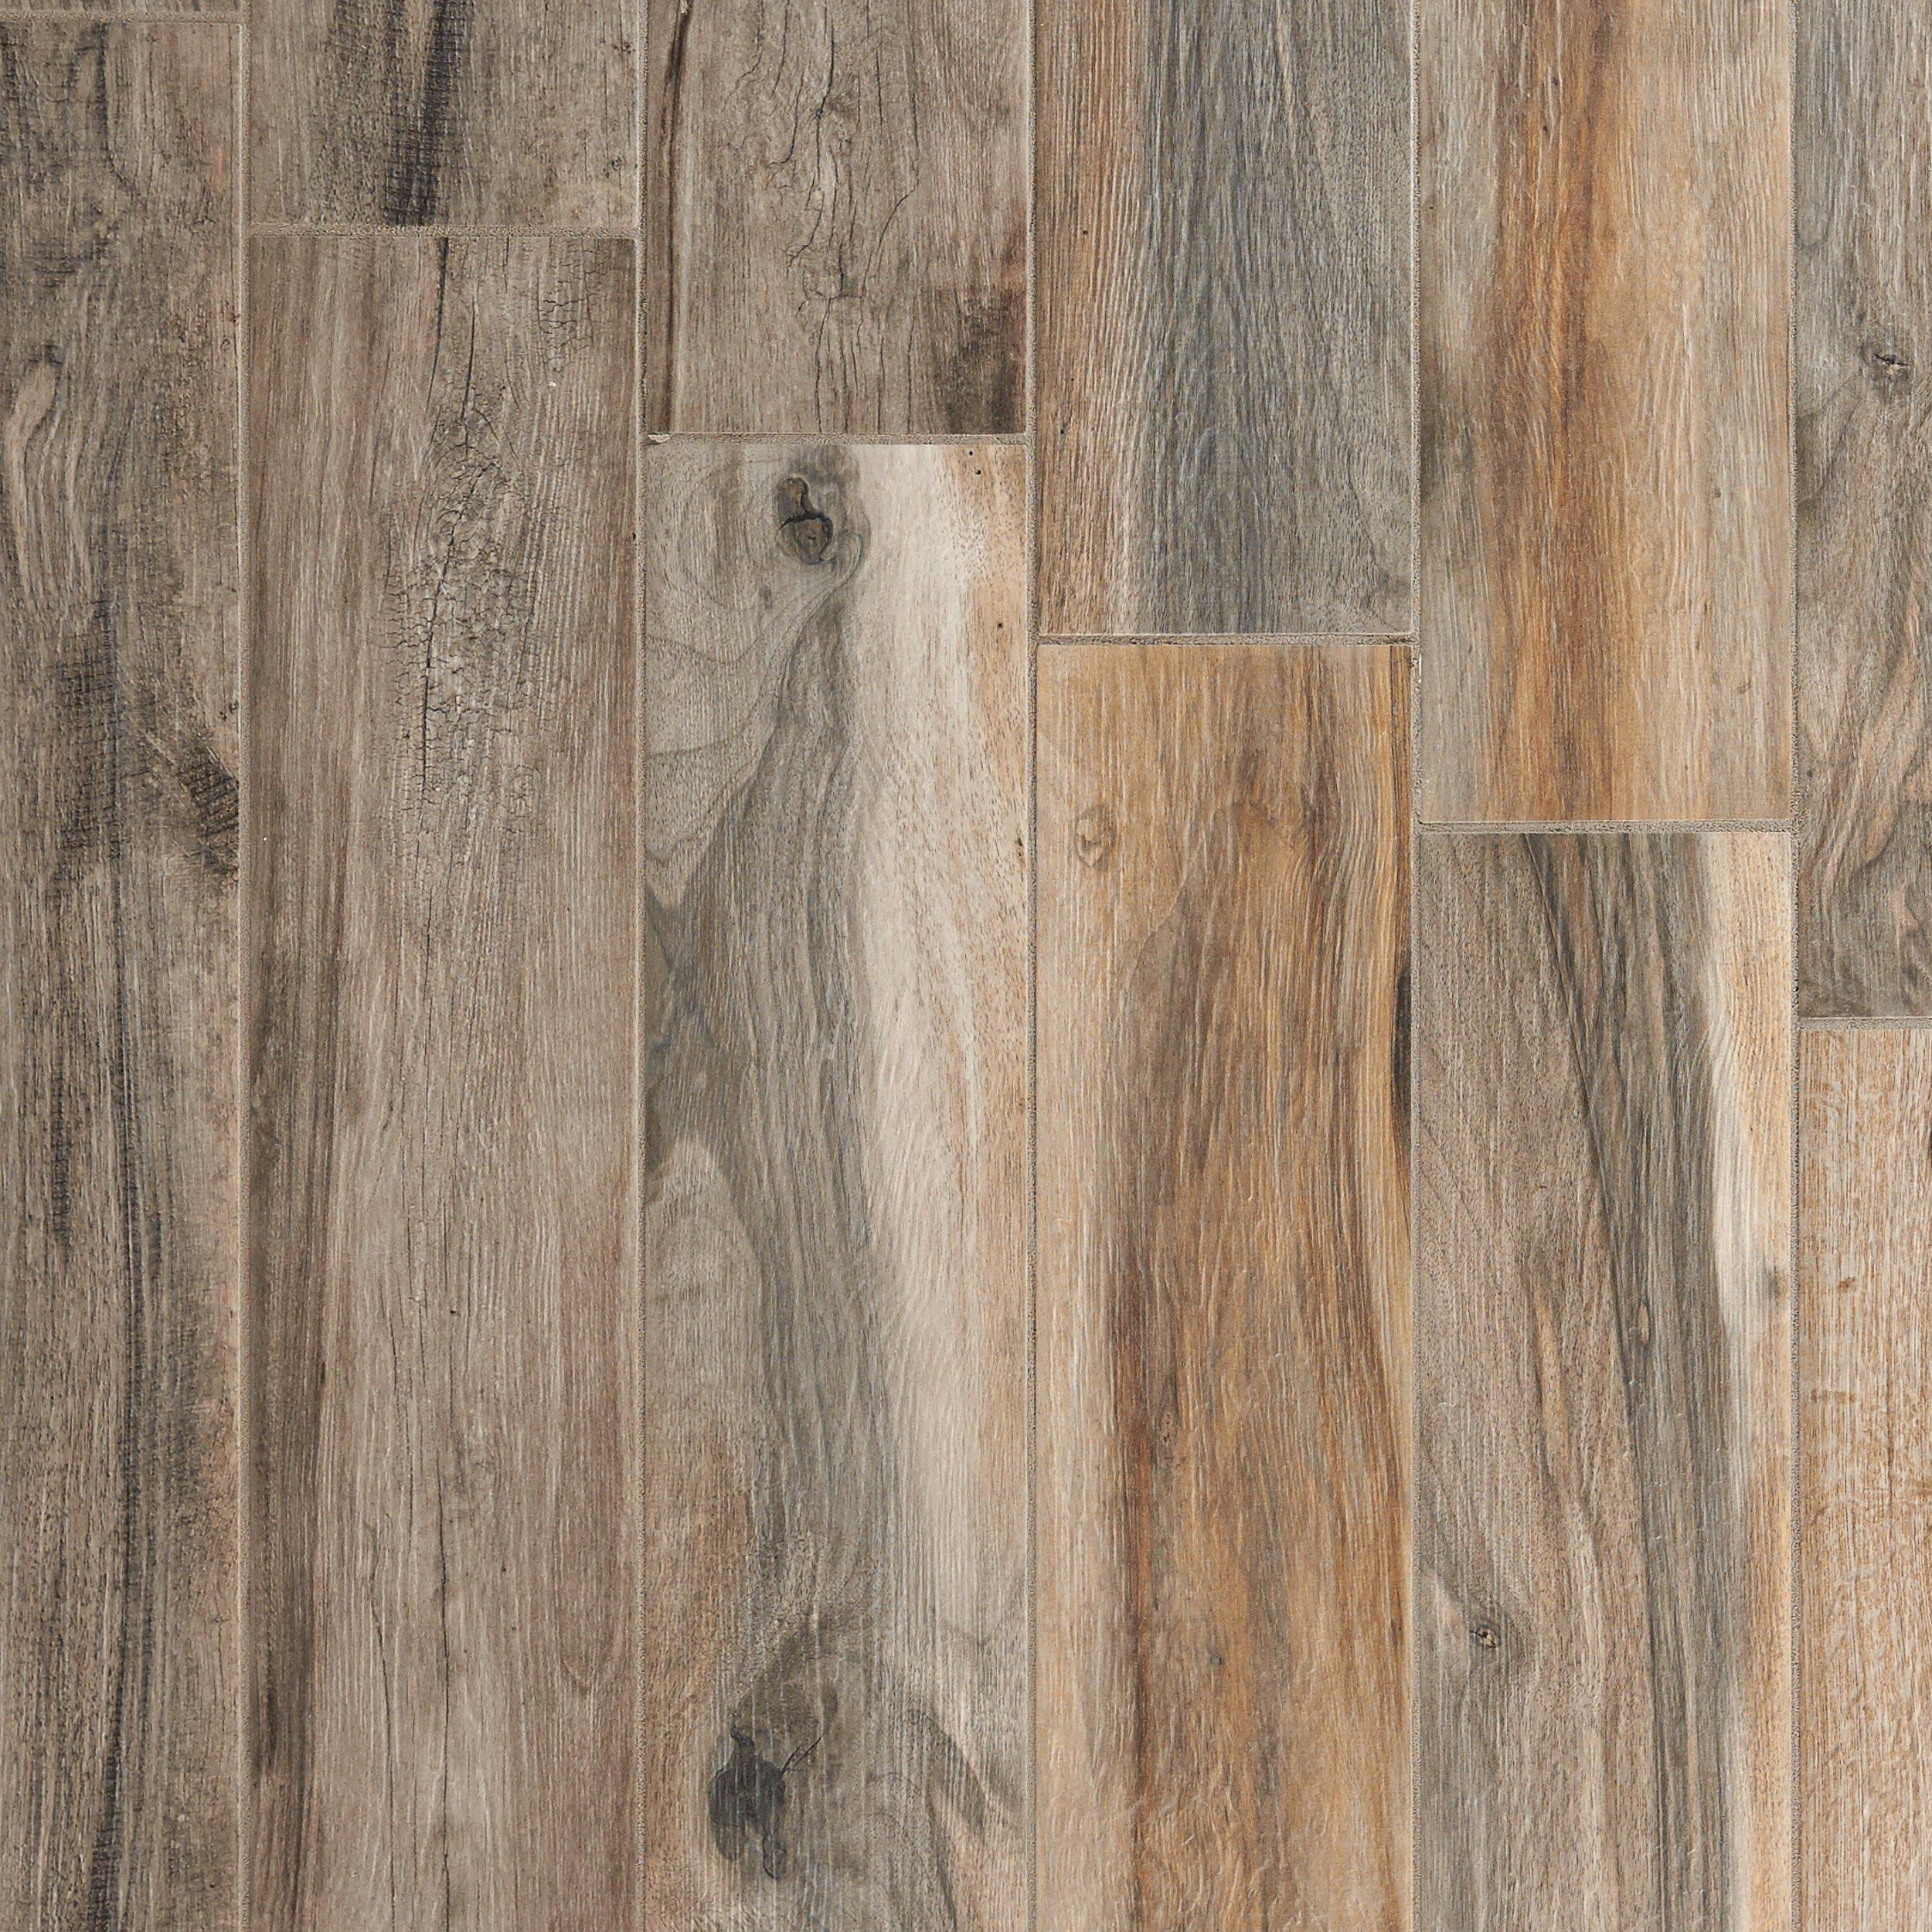 Soft Ash Wood Plank Porcelain Tile - 6 x 40 - 100105923 | Floor and